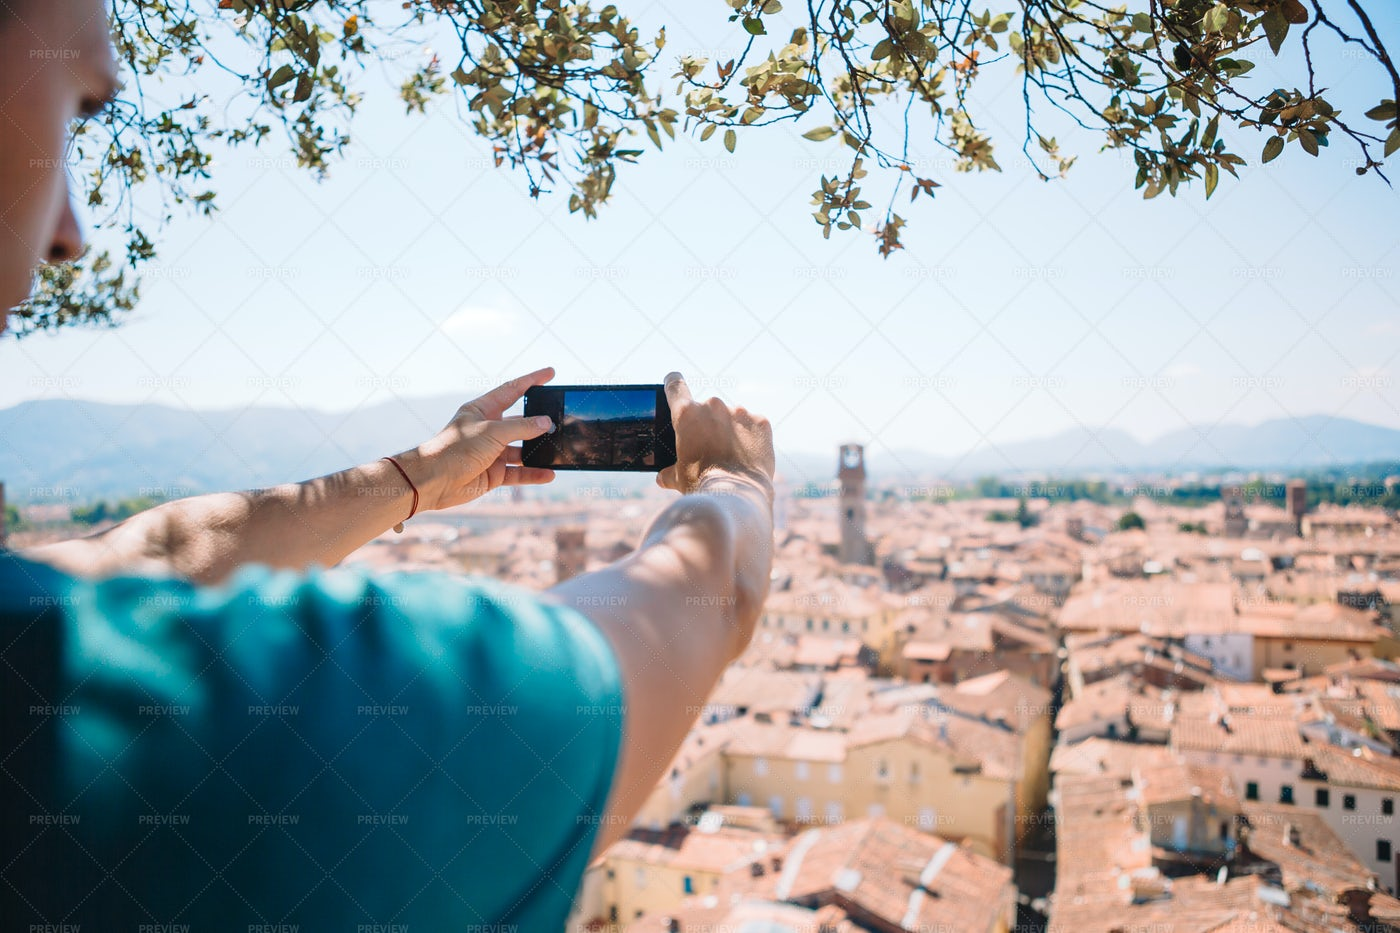 Taking Photo Of Venice Rooftops: Stock Photos